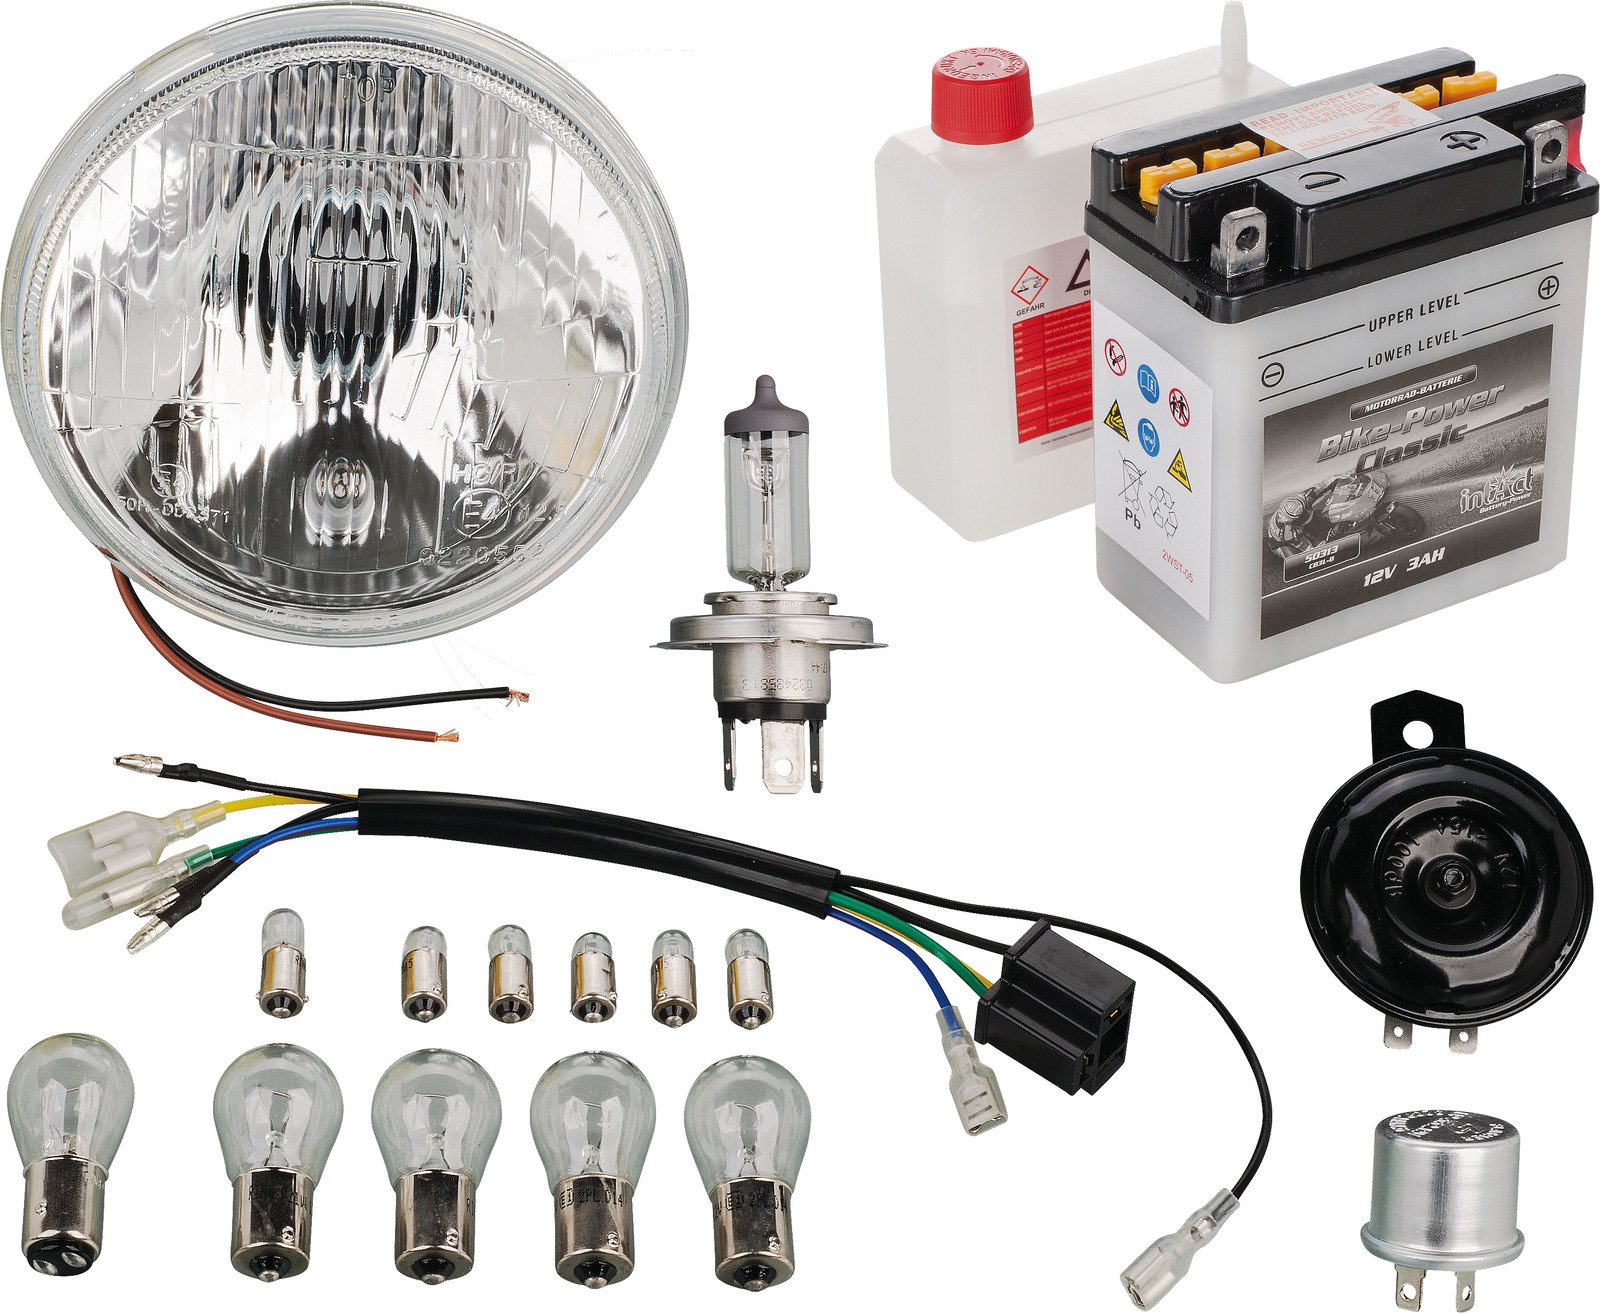 hight resolution of yamaha xt500 12v conversion add on kit for 50544 pme plug in basic or h4 upgrade 50550 50551